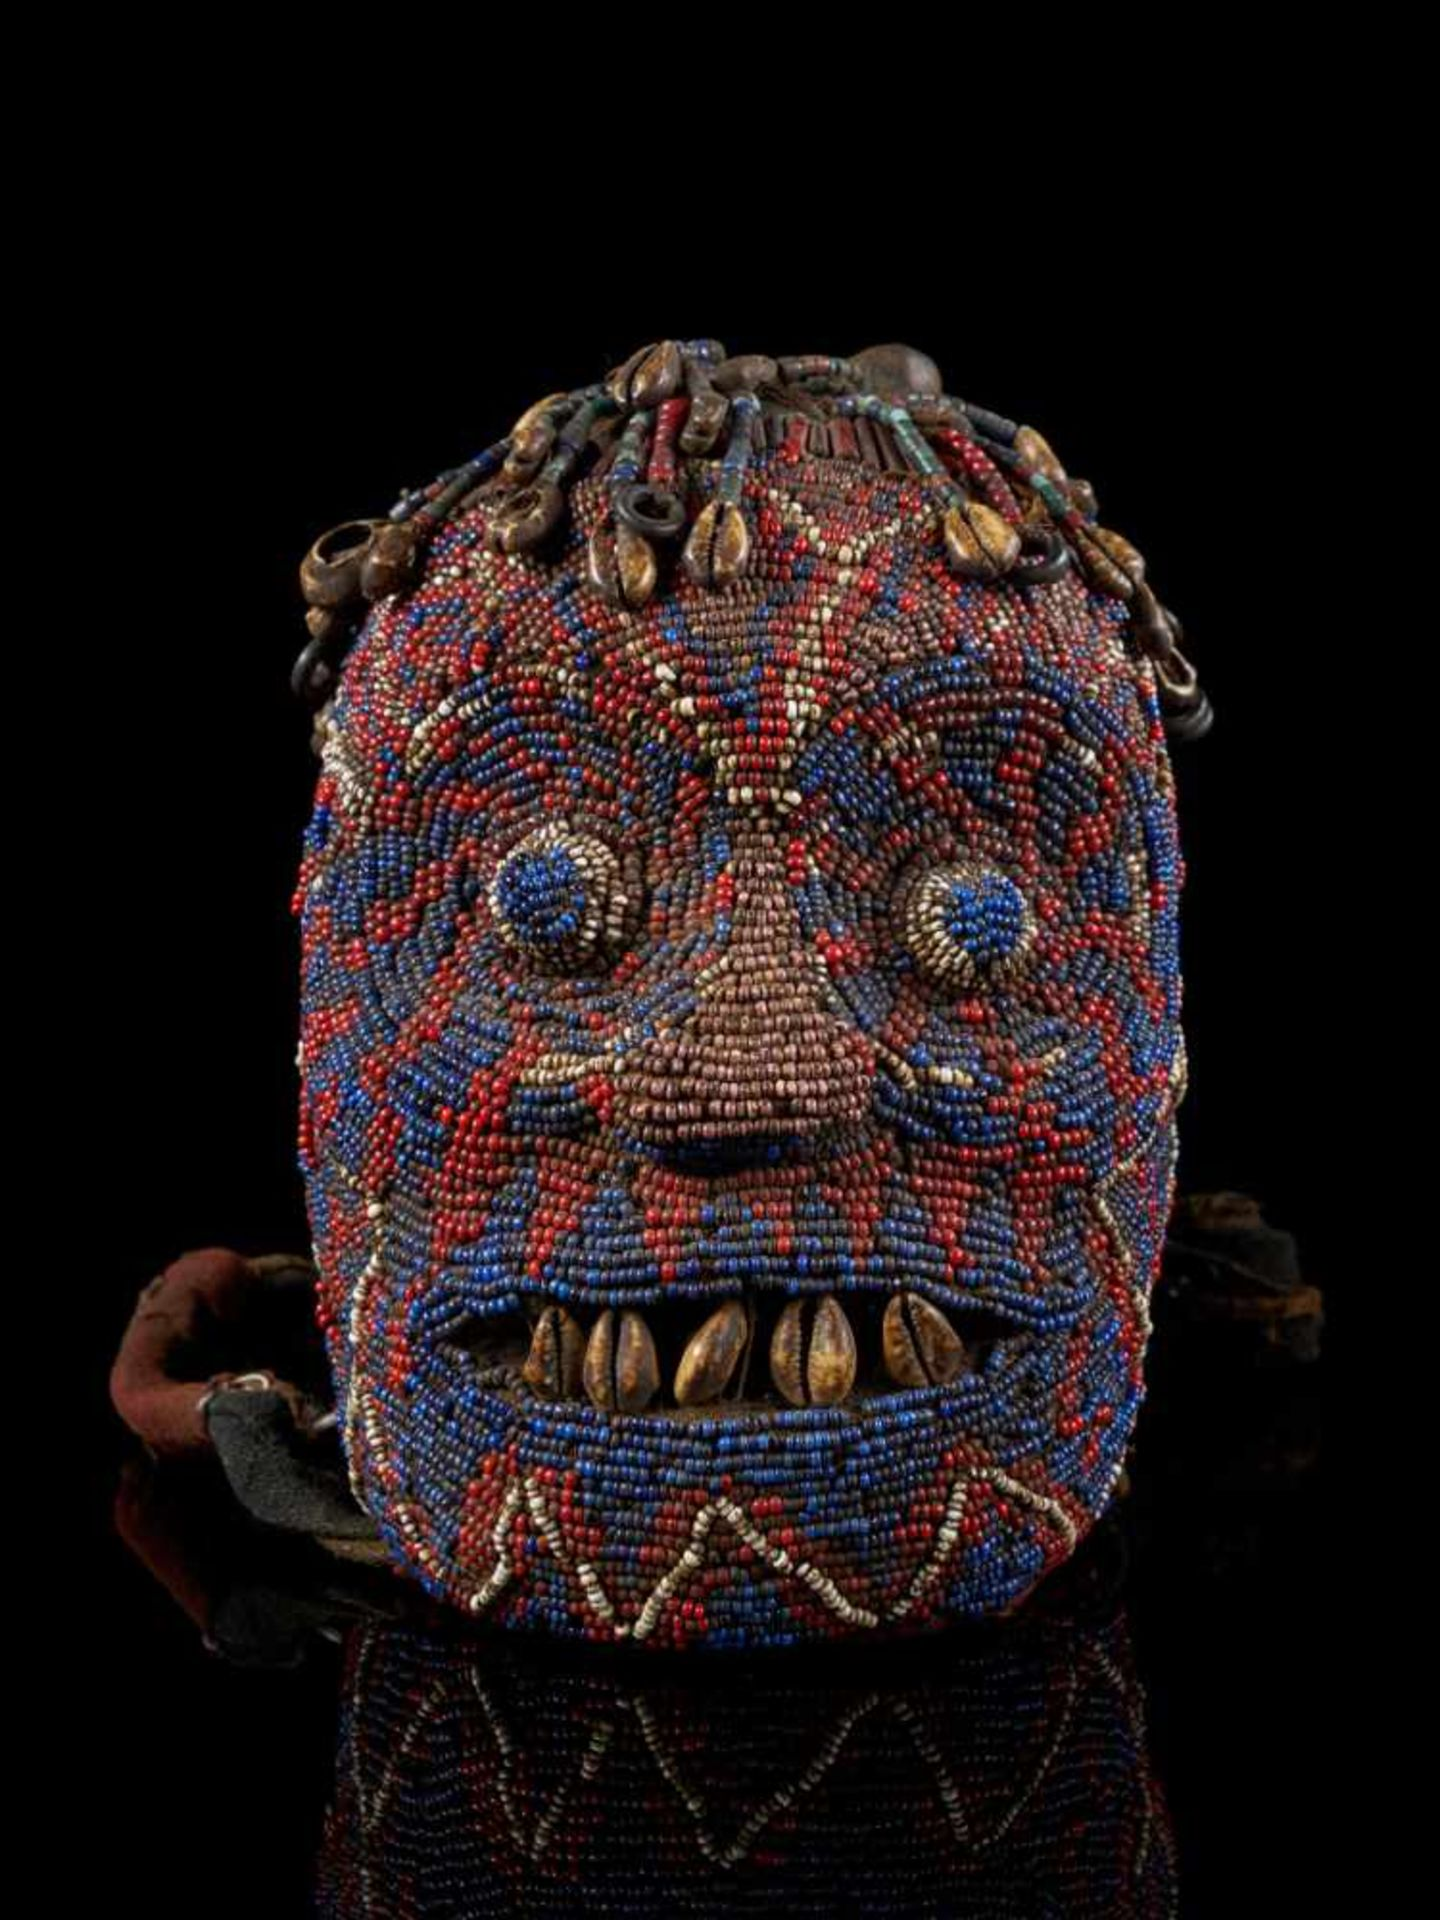 "Beaded Ceremonial Head ""Adwonzen"", Grassland People, Cameroon - Tribal ArtBeaded heads such as this, - Bild 2 aus 6"